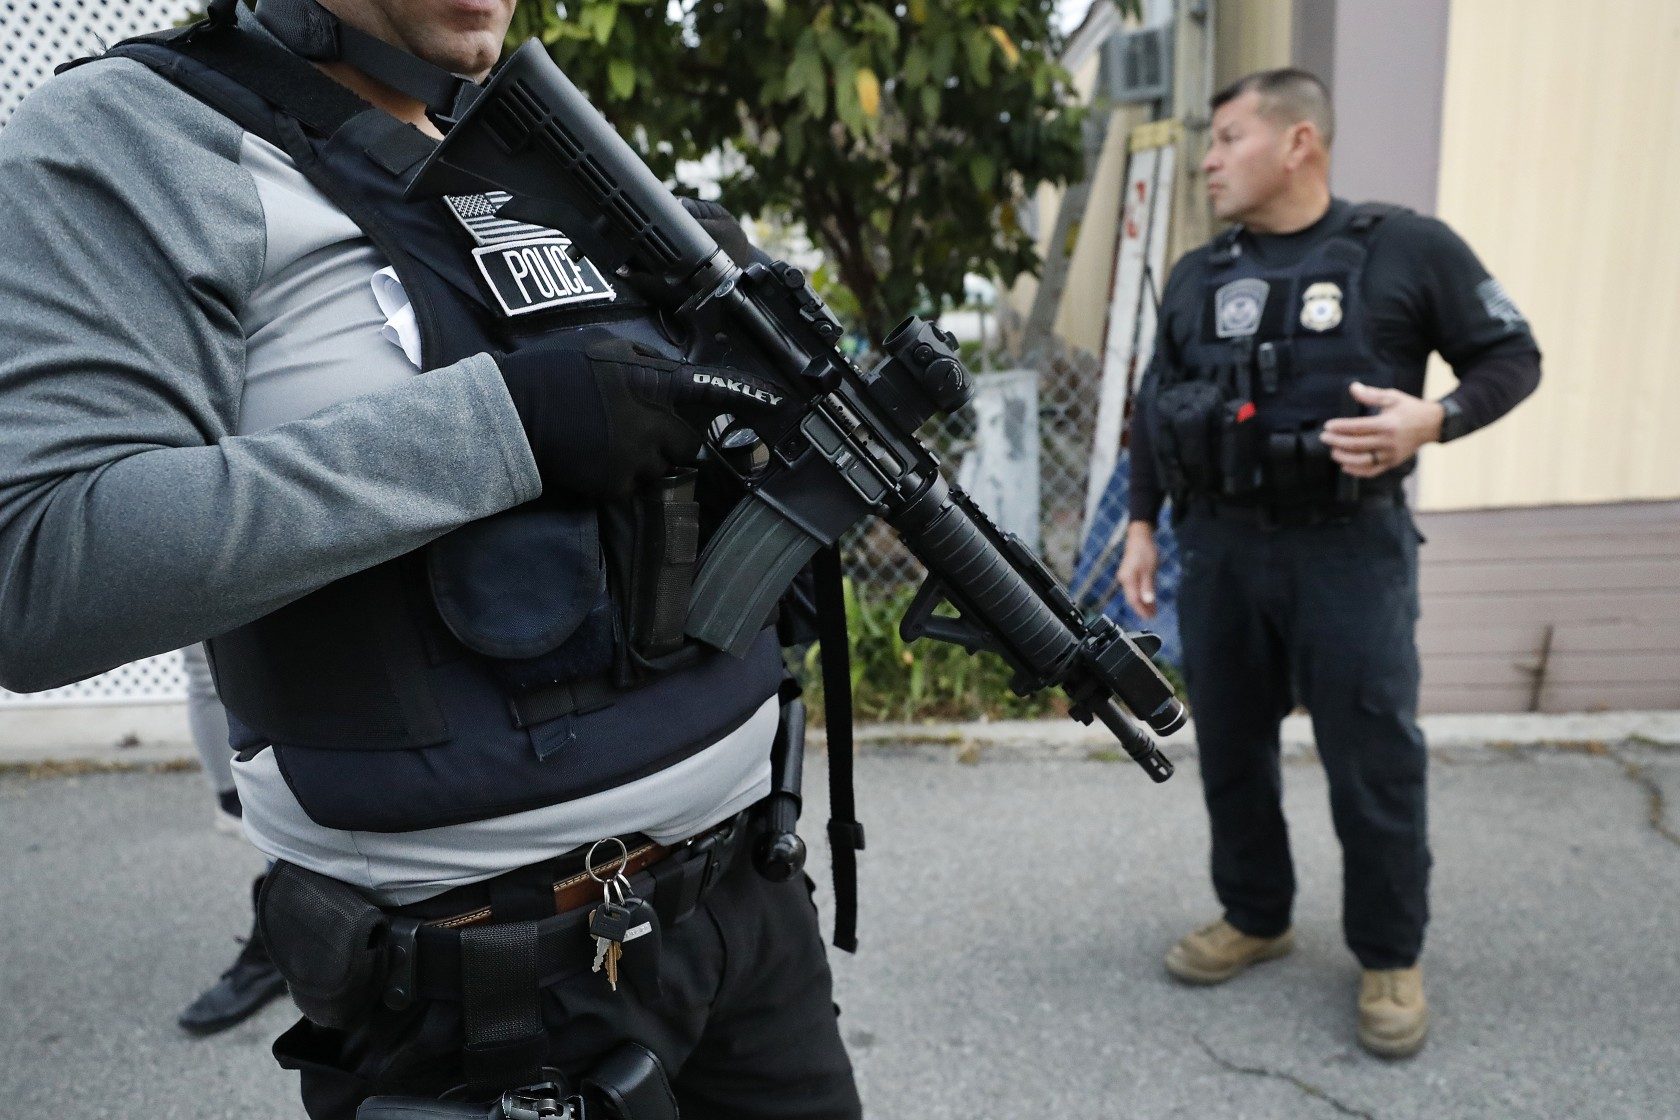 David A. Marin, a director of enforcement and removal operations with ICE, is seen in this photo on March 16, 2020. (Al Seib/Los Angeles Times)